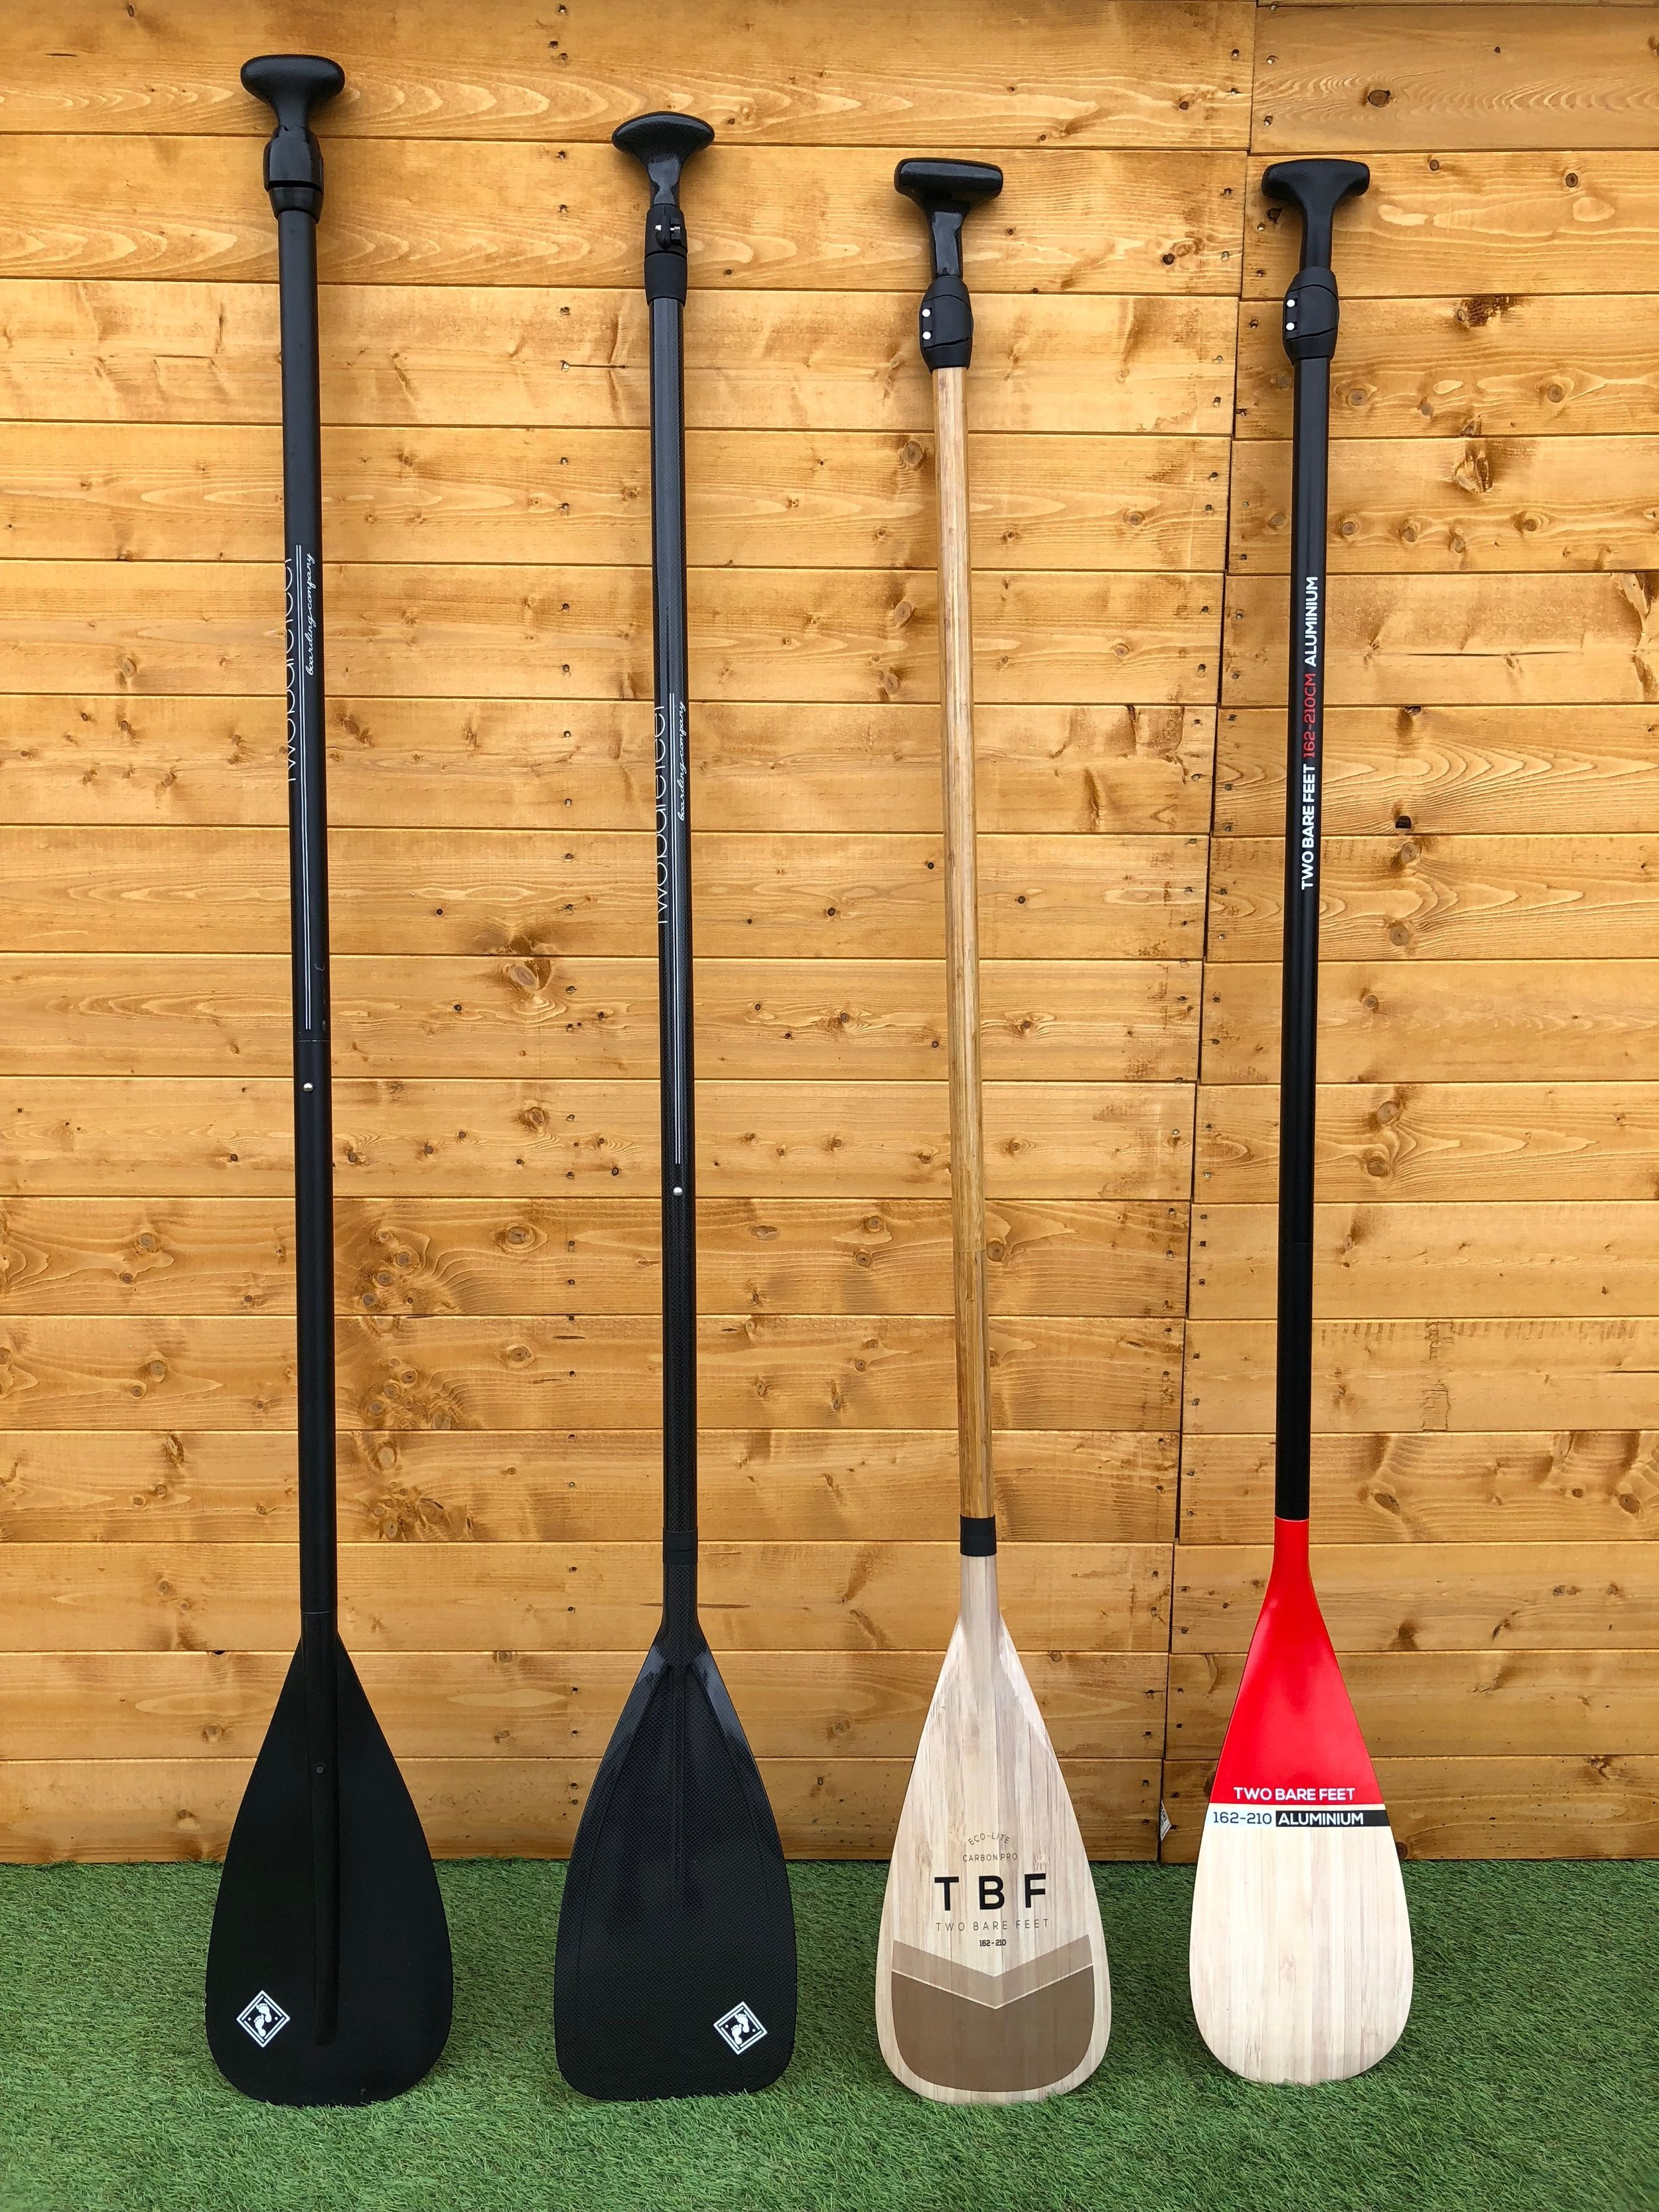 Paddles - We stock a whole range of paddles, including graphic and full carbon fibre paddles